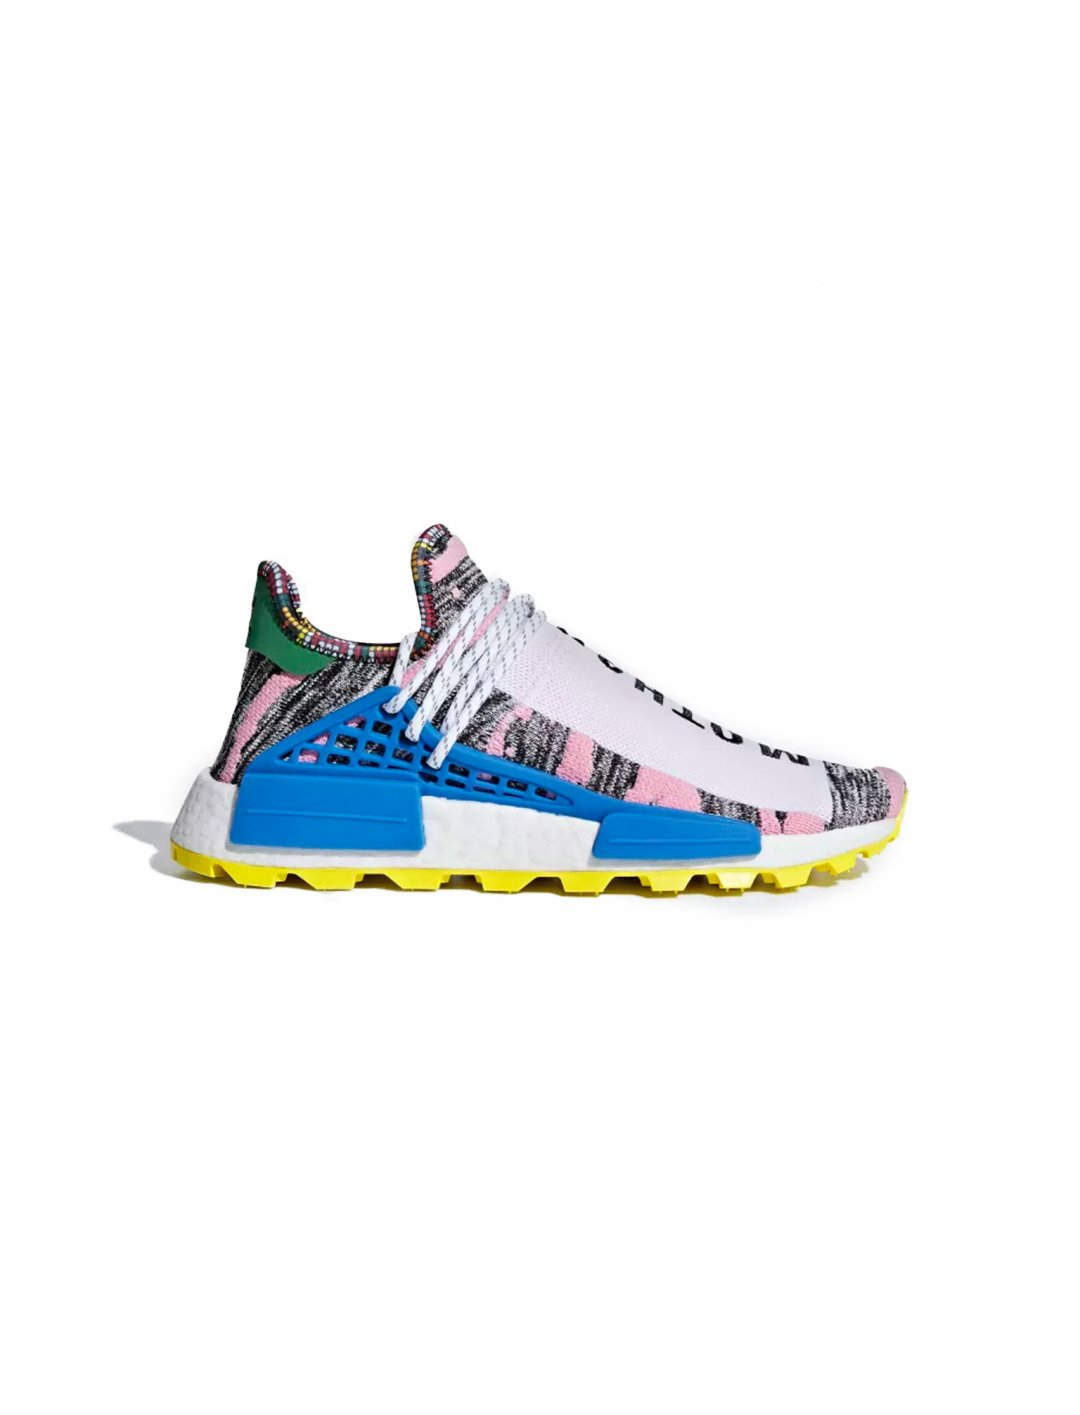 "Pharrell Williams Afro NMD Shoes {""id"":12,""product_section_id"":1,""name"":""Shoes"",""order"":12} Pharrell x adidas Originals"